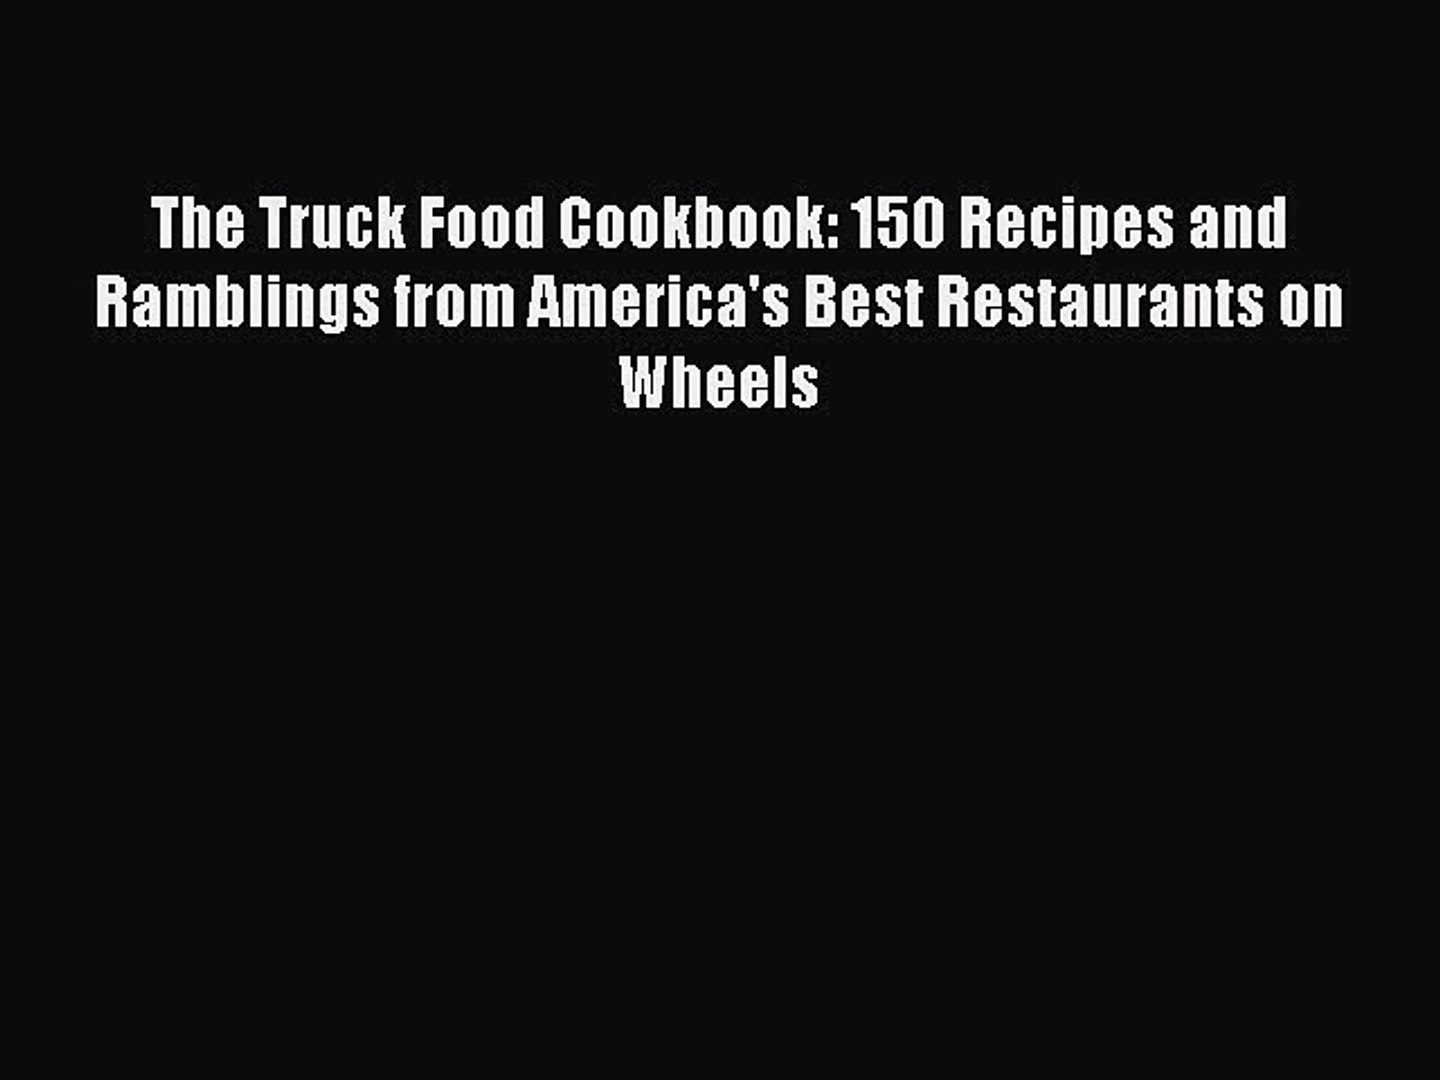 The Truck Food Cookbook: 150 Recipes and Ramblings from Americas Best Restaurants on Wheels